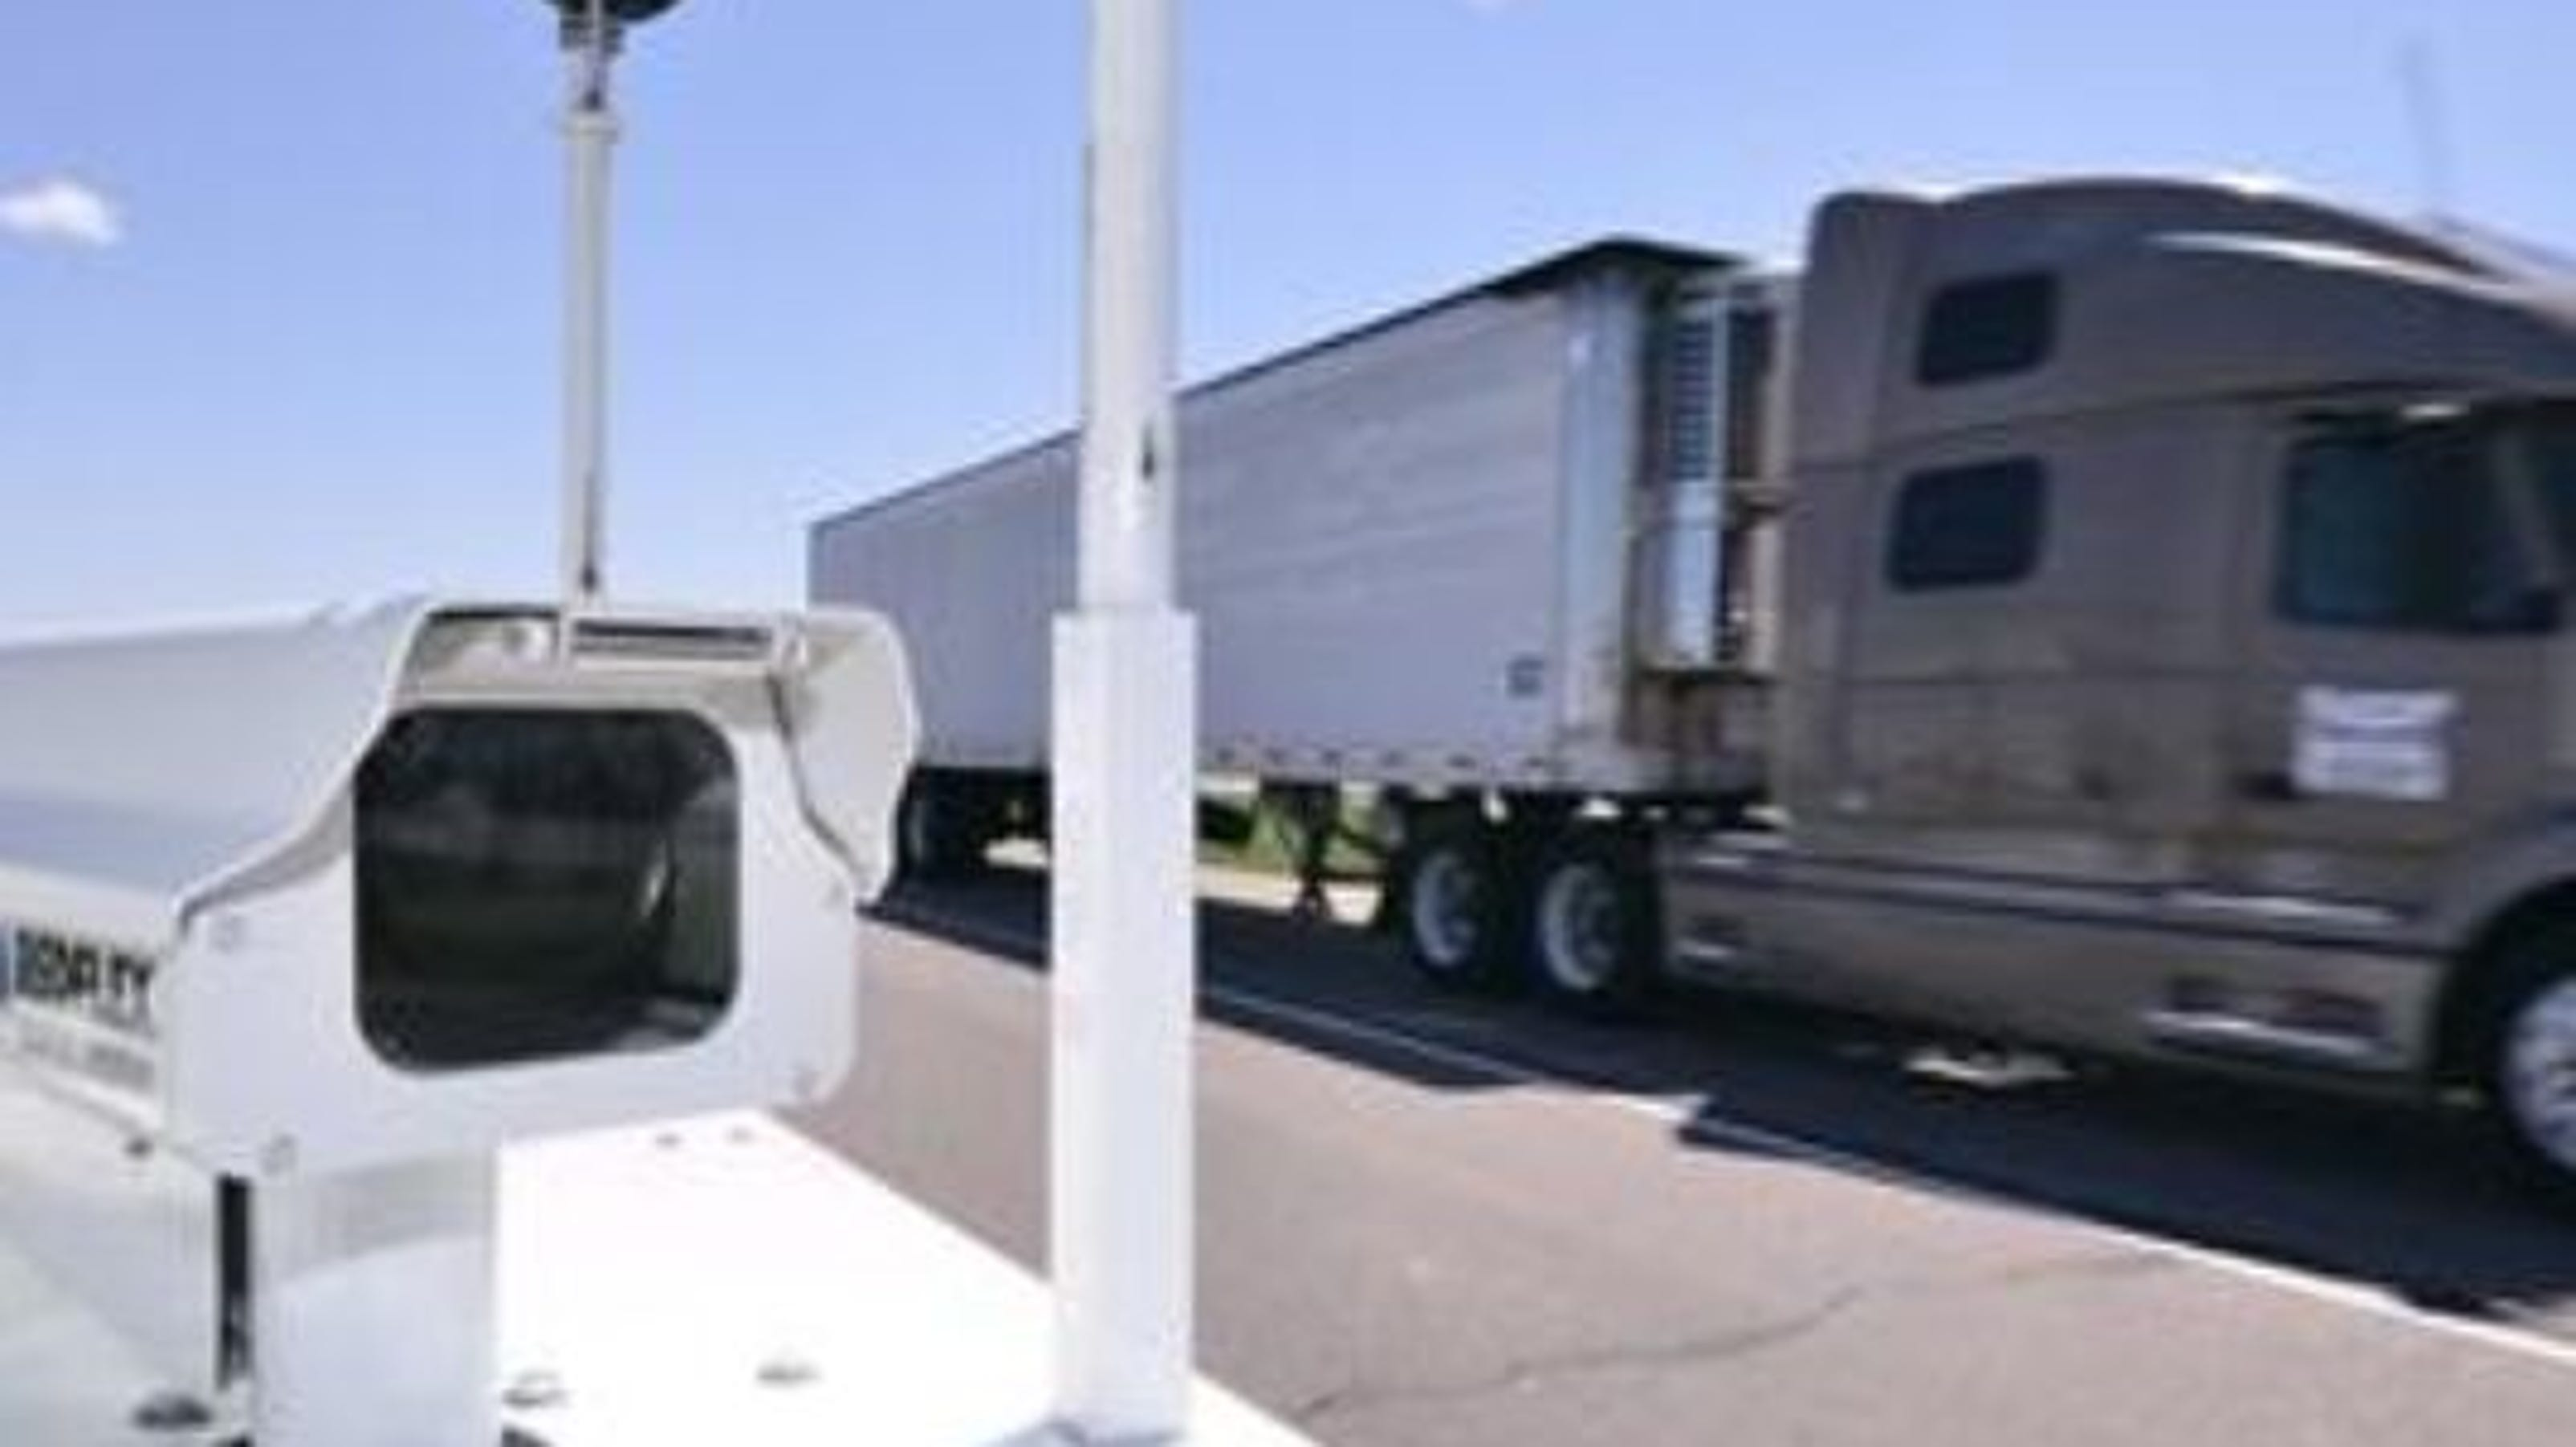 High court upholds Sioux City traffic cameras